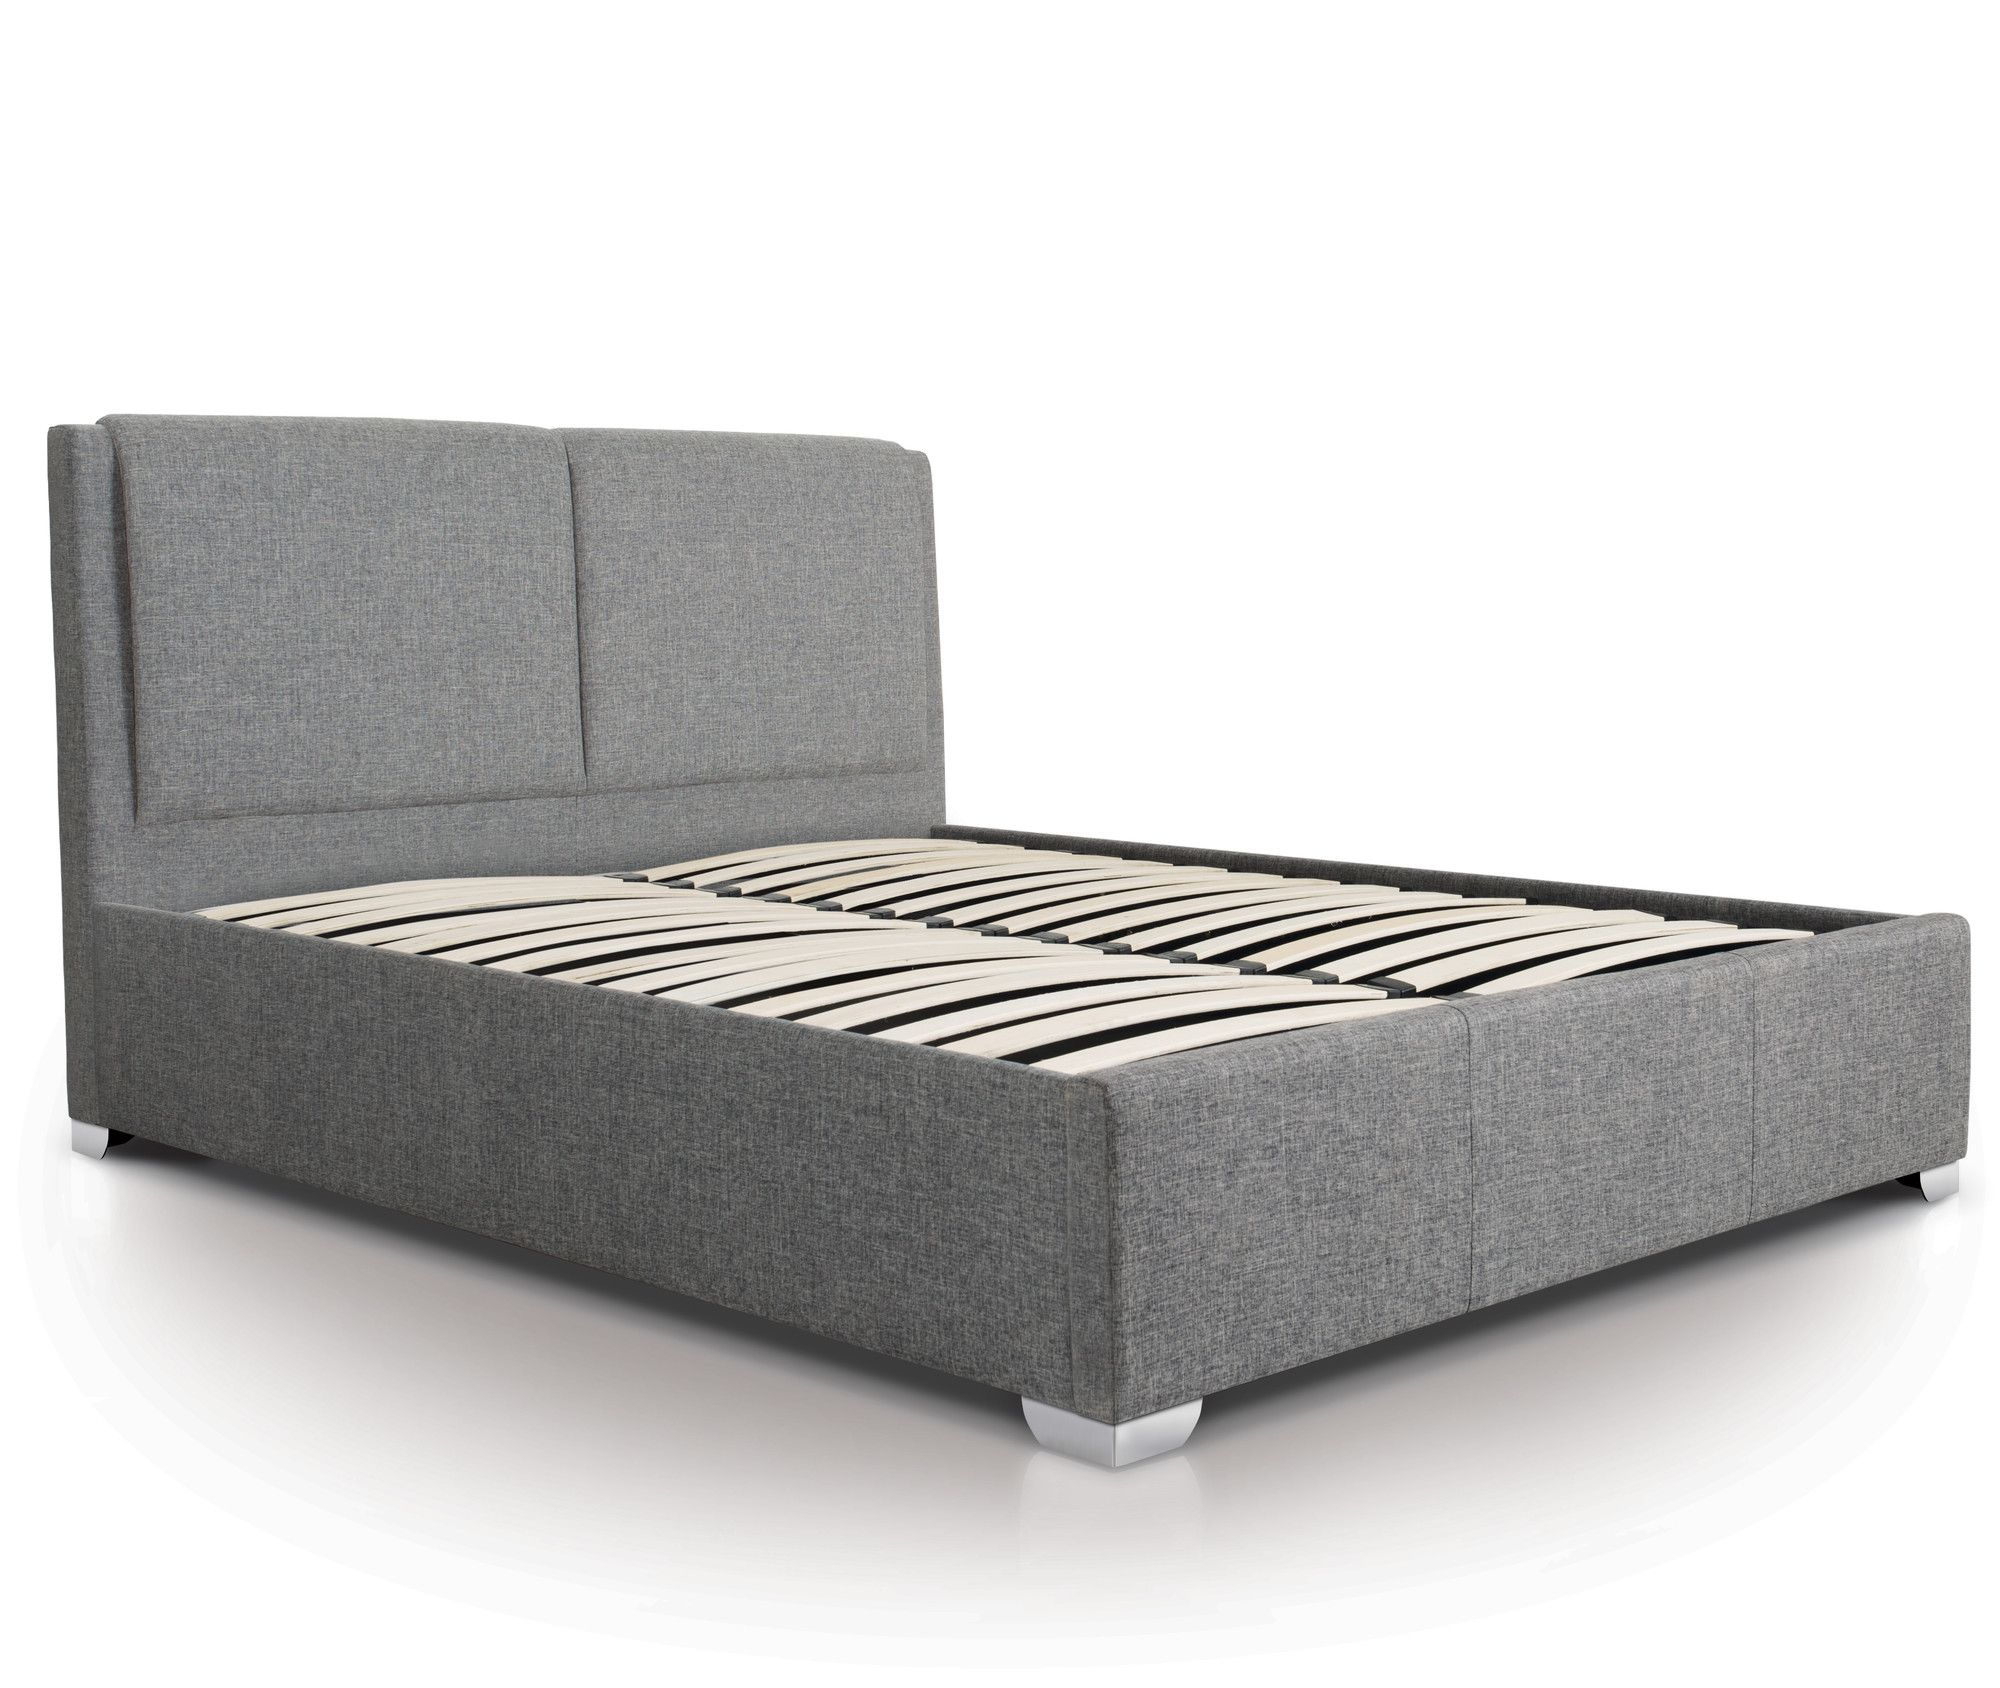 Tremendous Upholstered Ottoman Bed Frame Furniture Makeover In 2019 Creativecarmelina Interior Chair Design Creativecarmelinacom